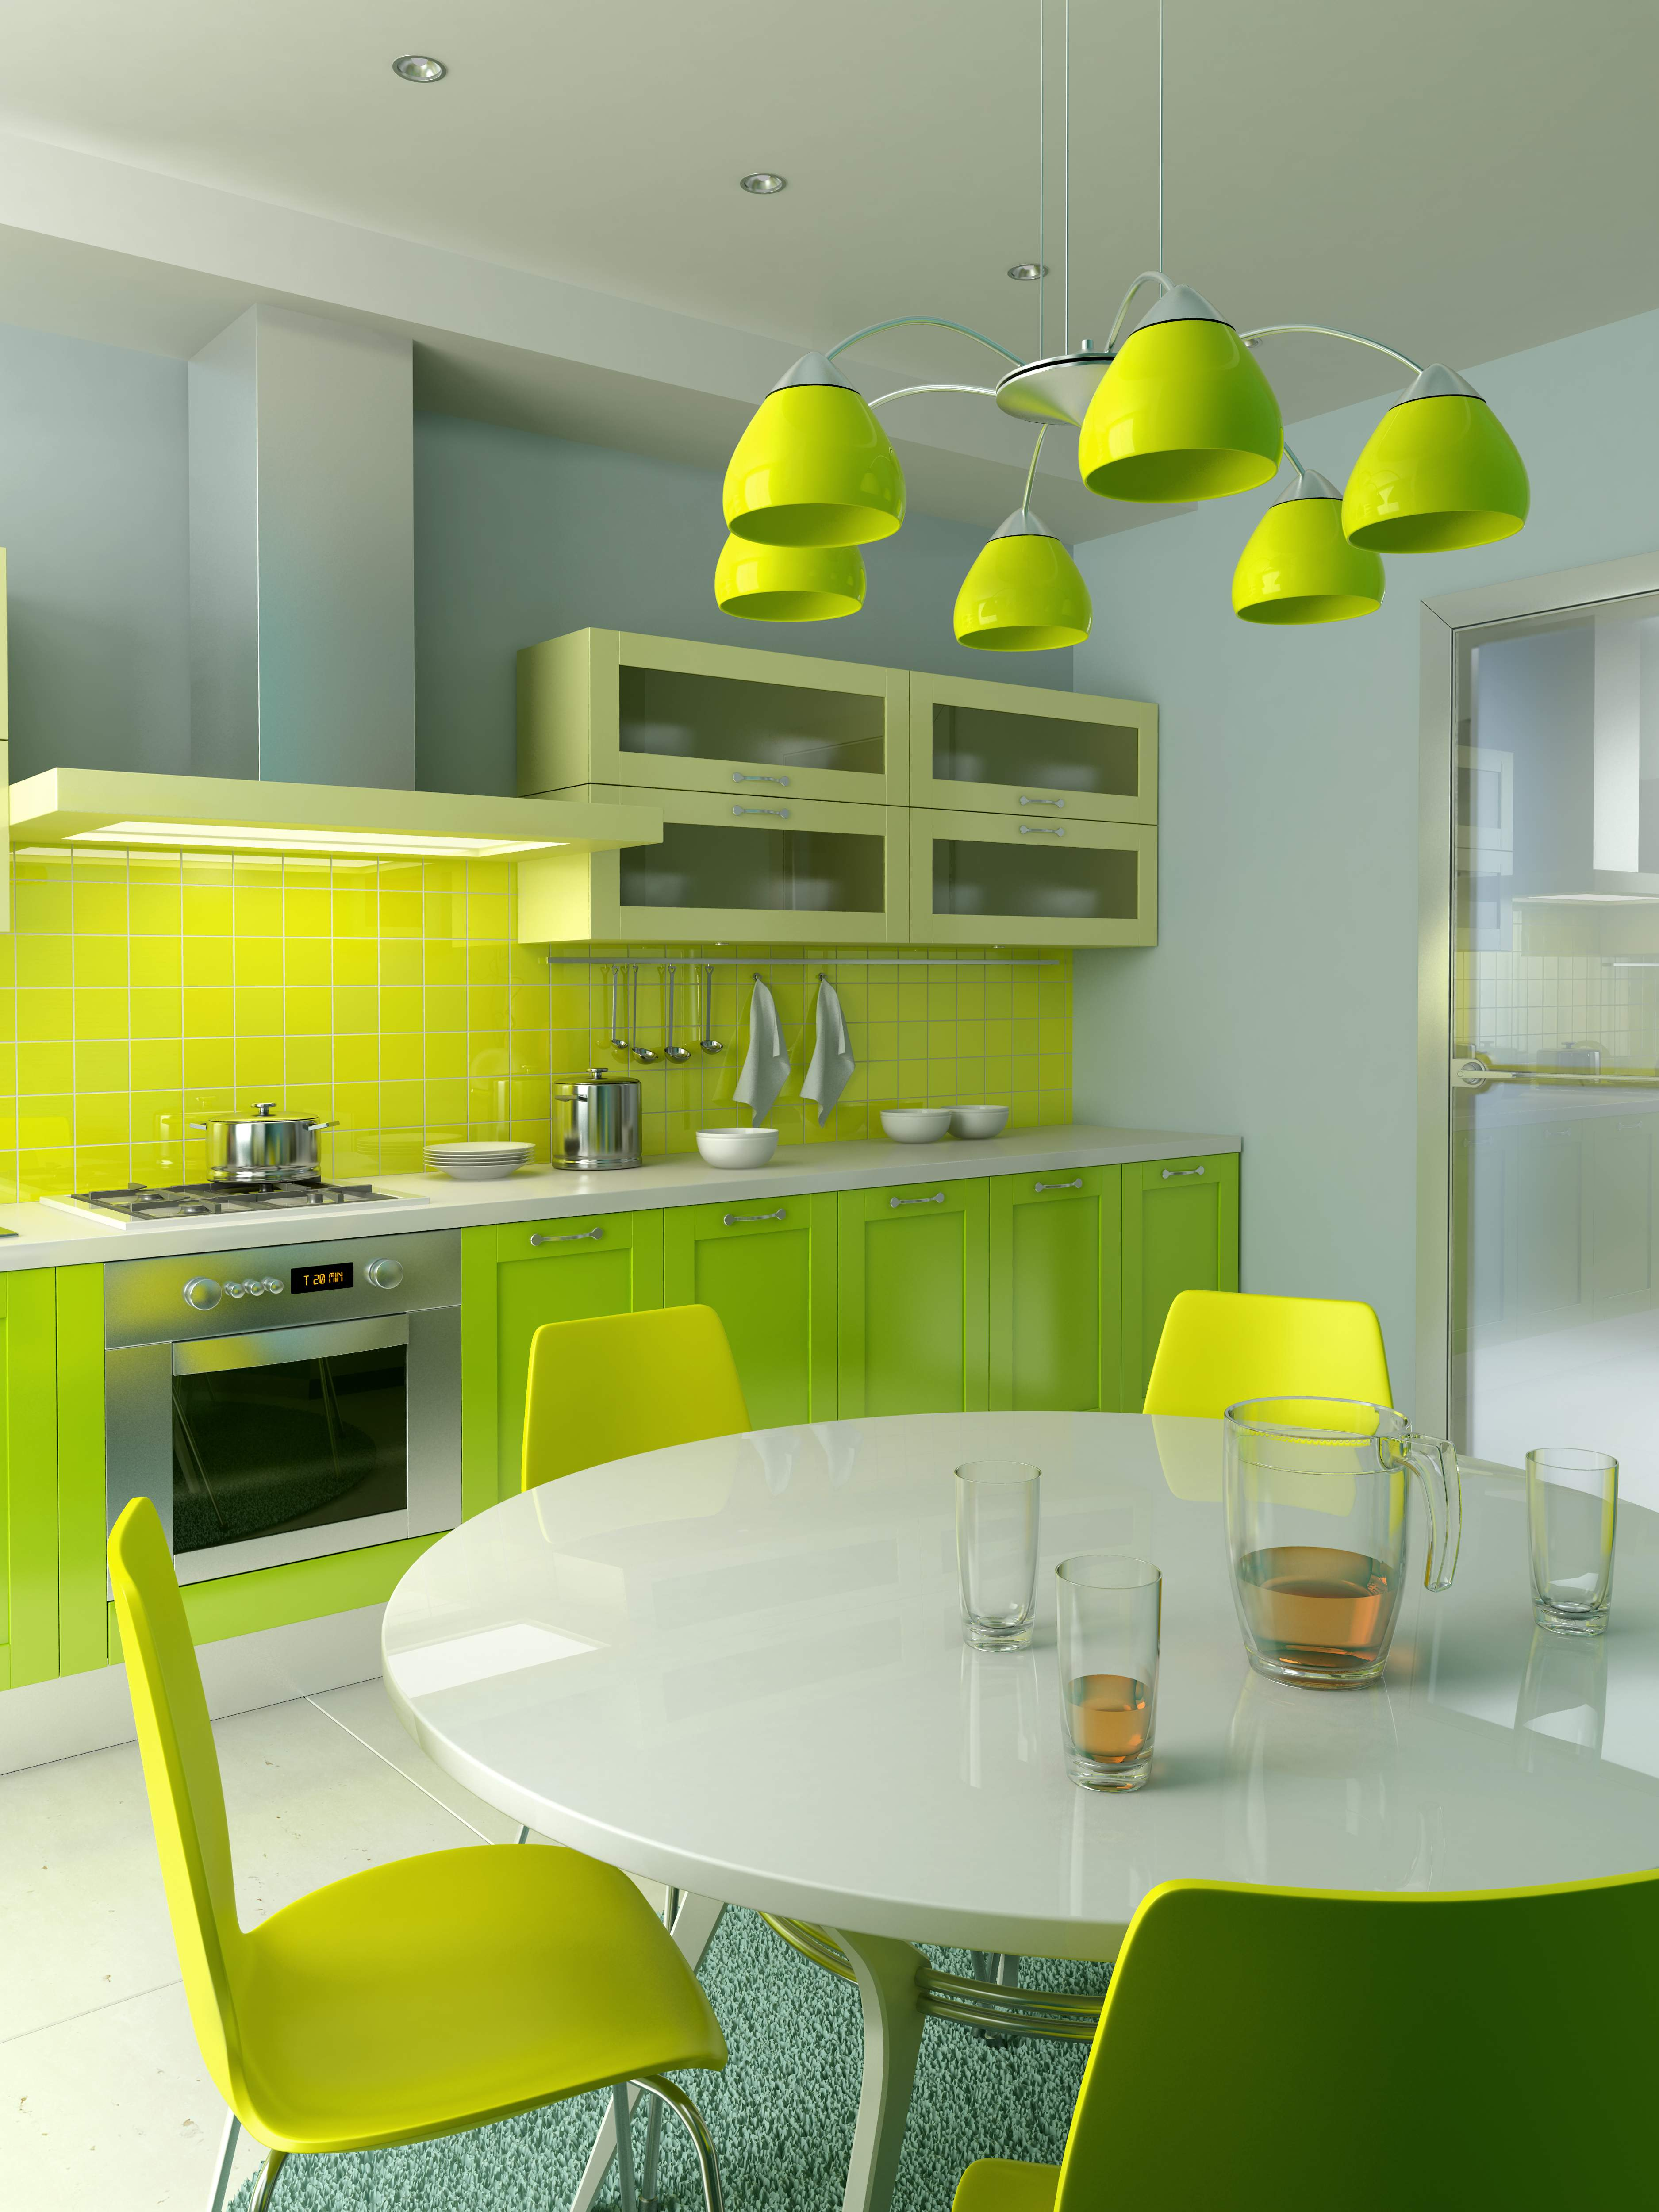 small kitchen table with 2 chairs small kitchen table Small kitchen table with 2 chairs Photo 5